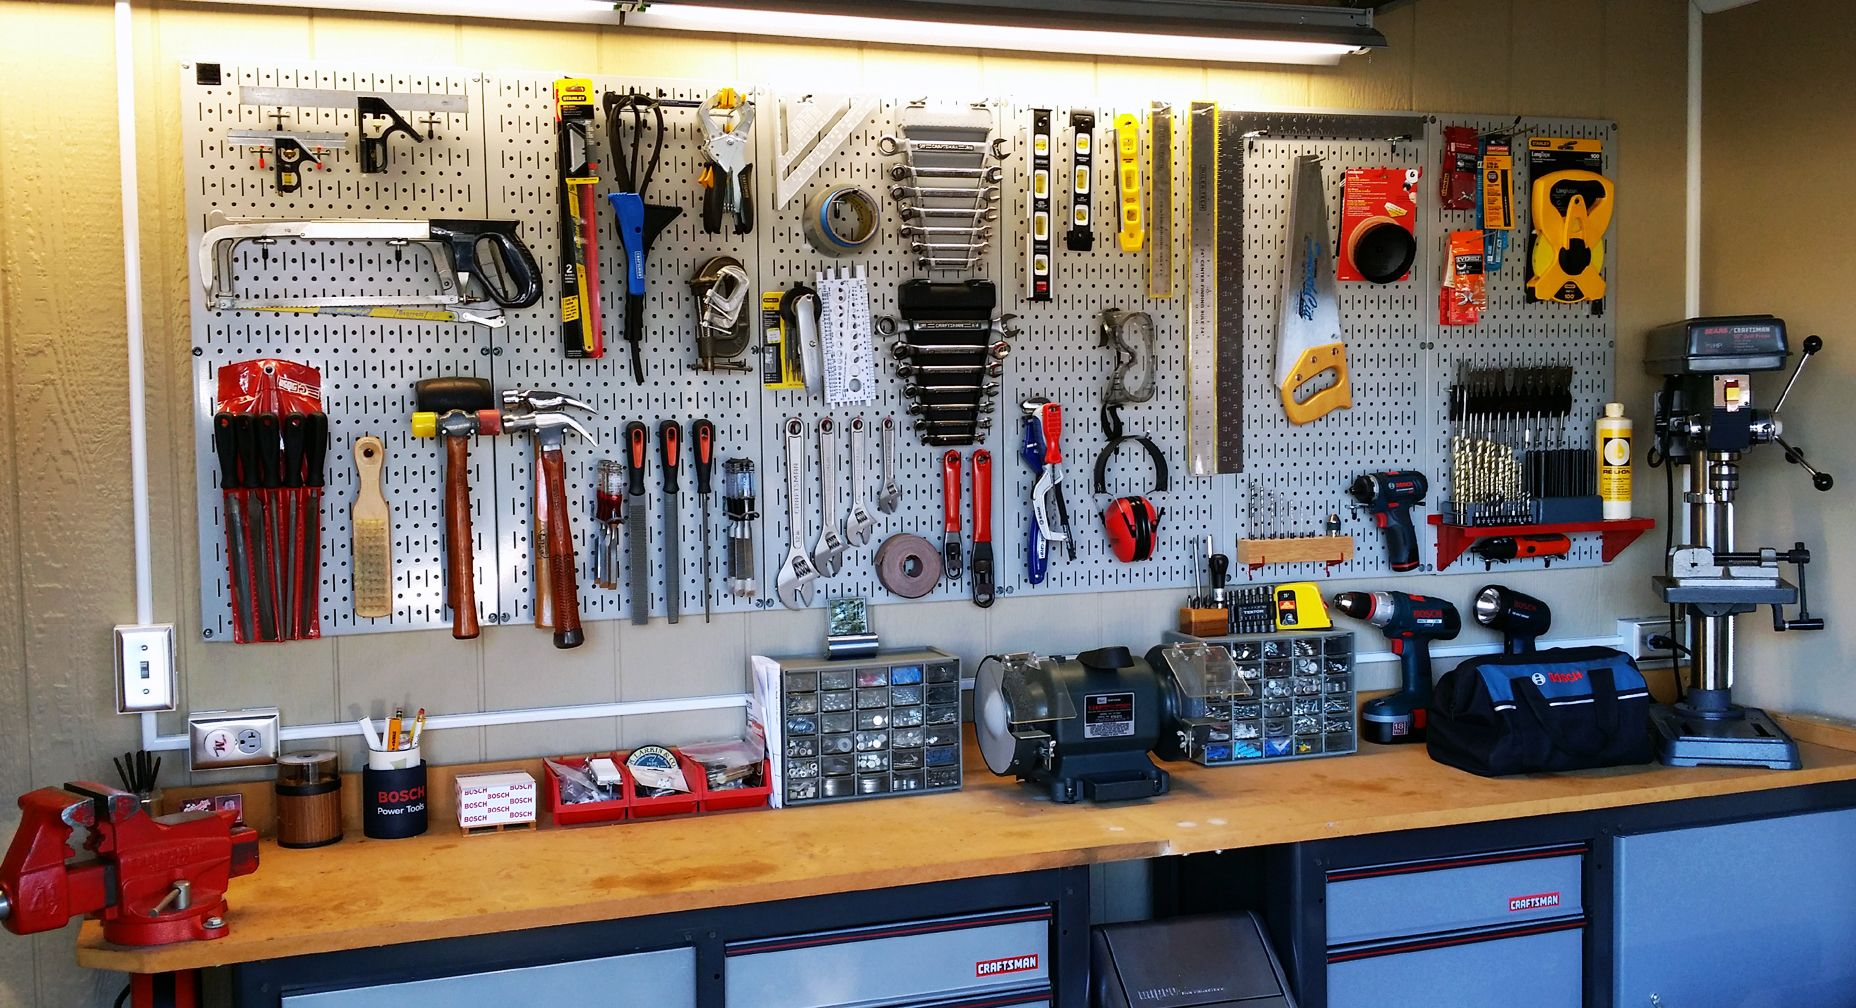 A Neat And Clean Workshop Just Makes You Want To Get To Work